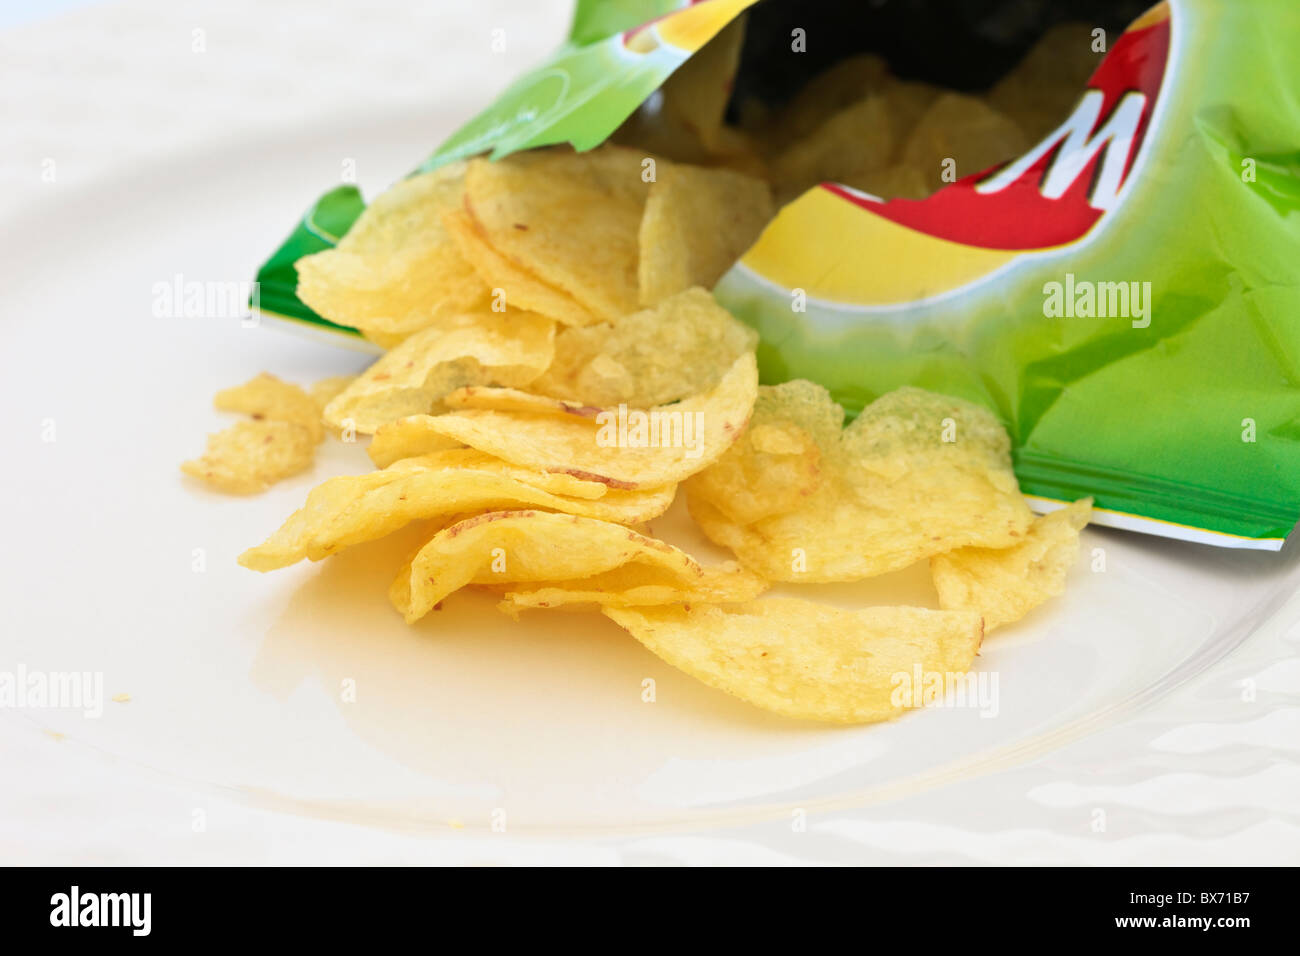 Walkers crisp packet open with crisps spilling out on a plate. - Stock Image